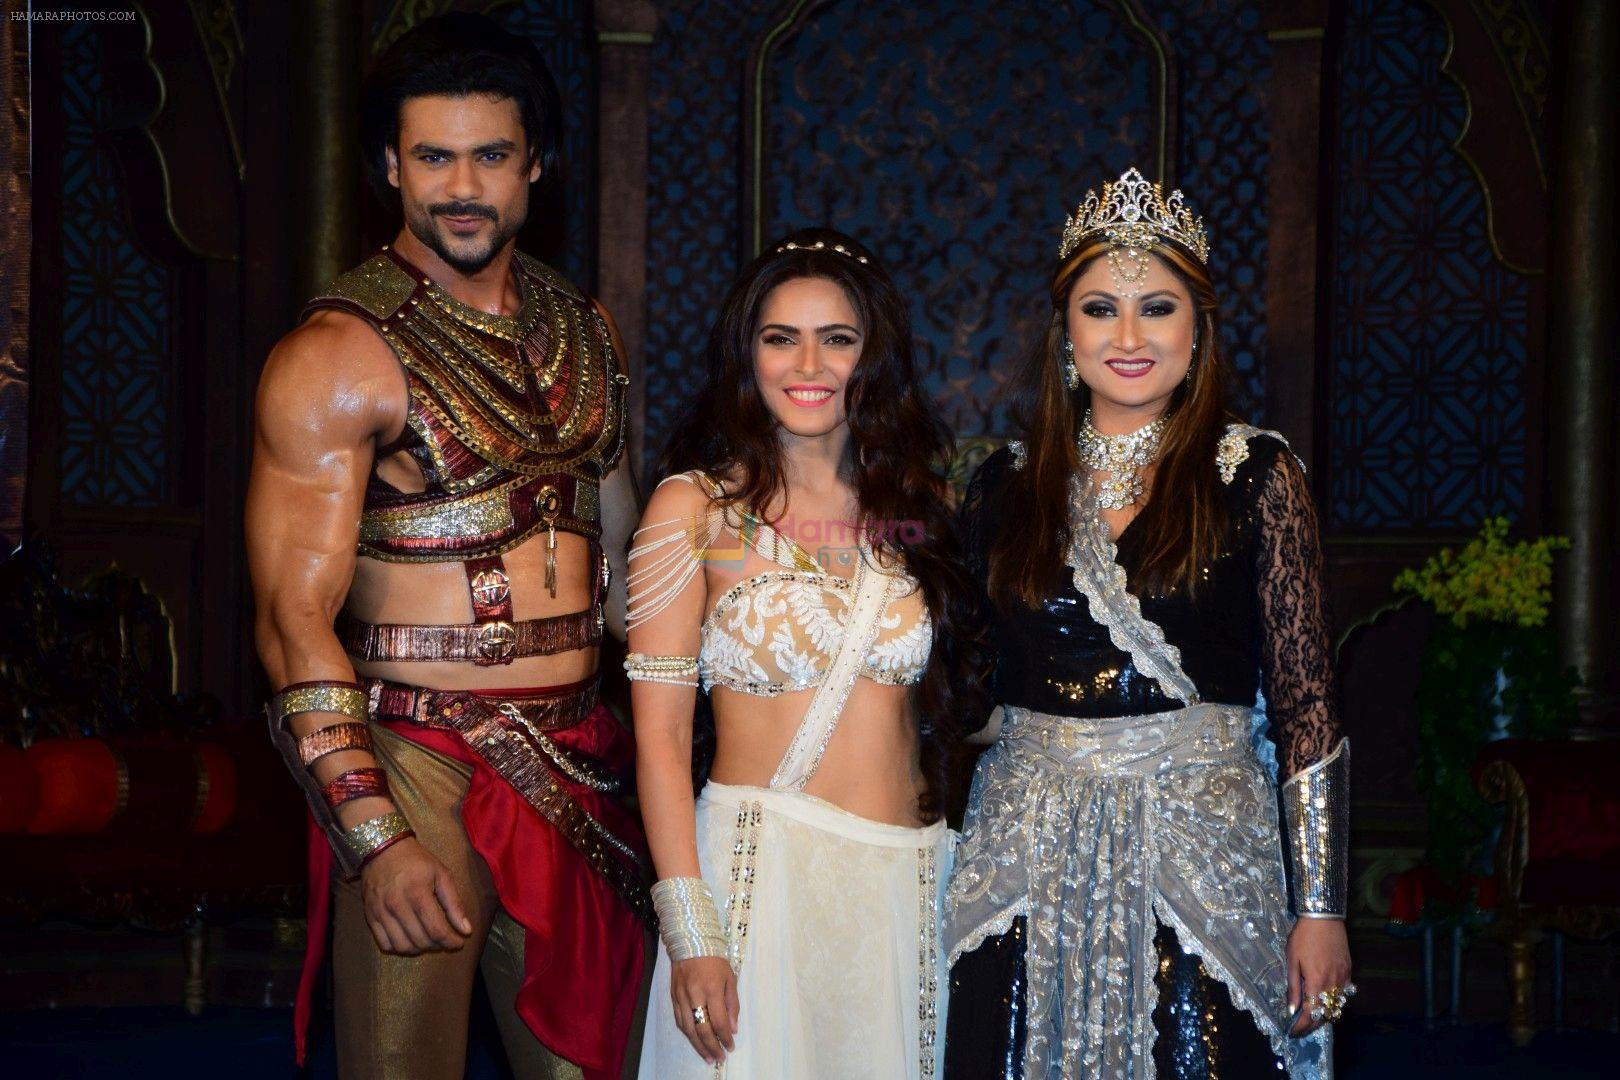 Madhurima Tuli, Vishal Aditya, Urvashi Dholakia during launch of serial Chandrakanta in Mumbai on June 14, 2017